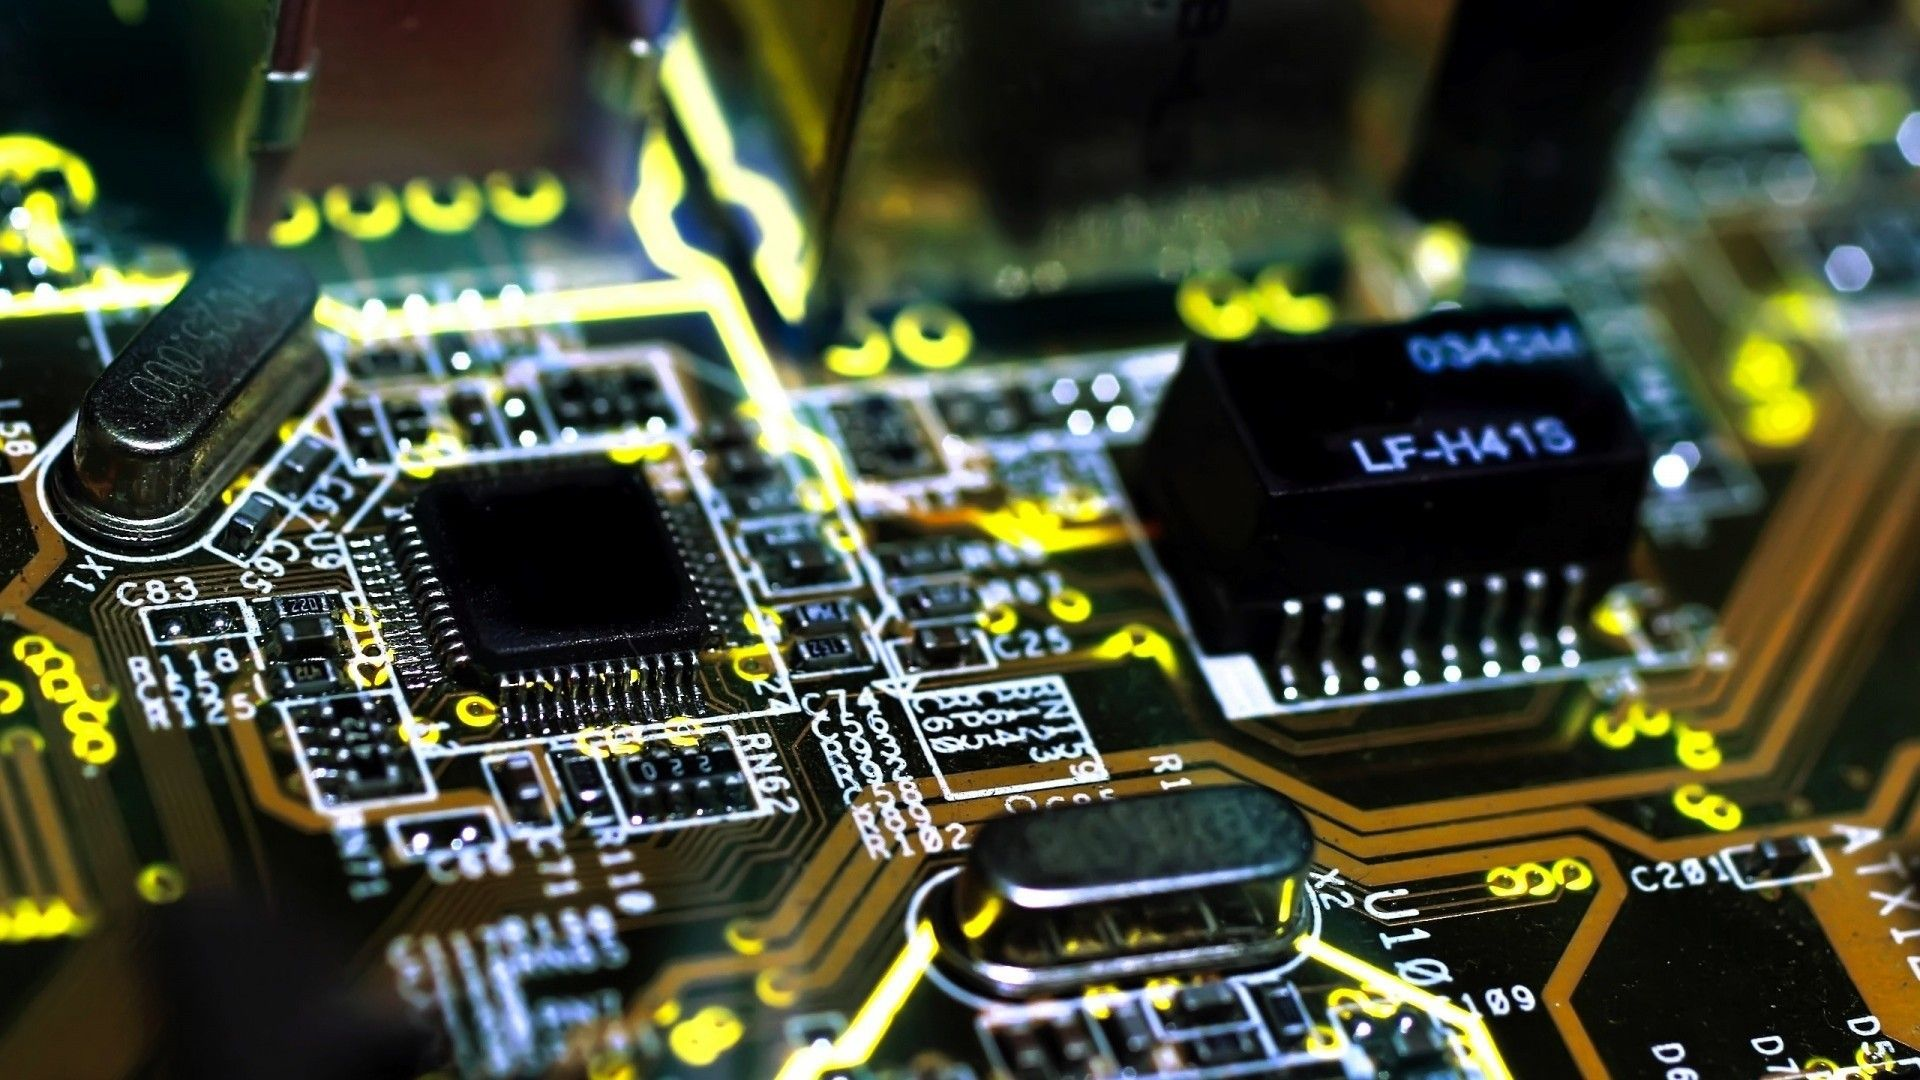 Chips Electronic Circuit Boards 1920x1080 Repair Board Royalty Free Stock Images Image Via Allwallpaperin